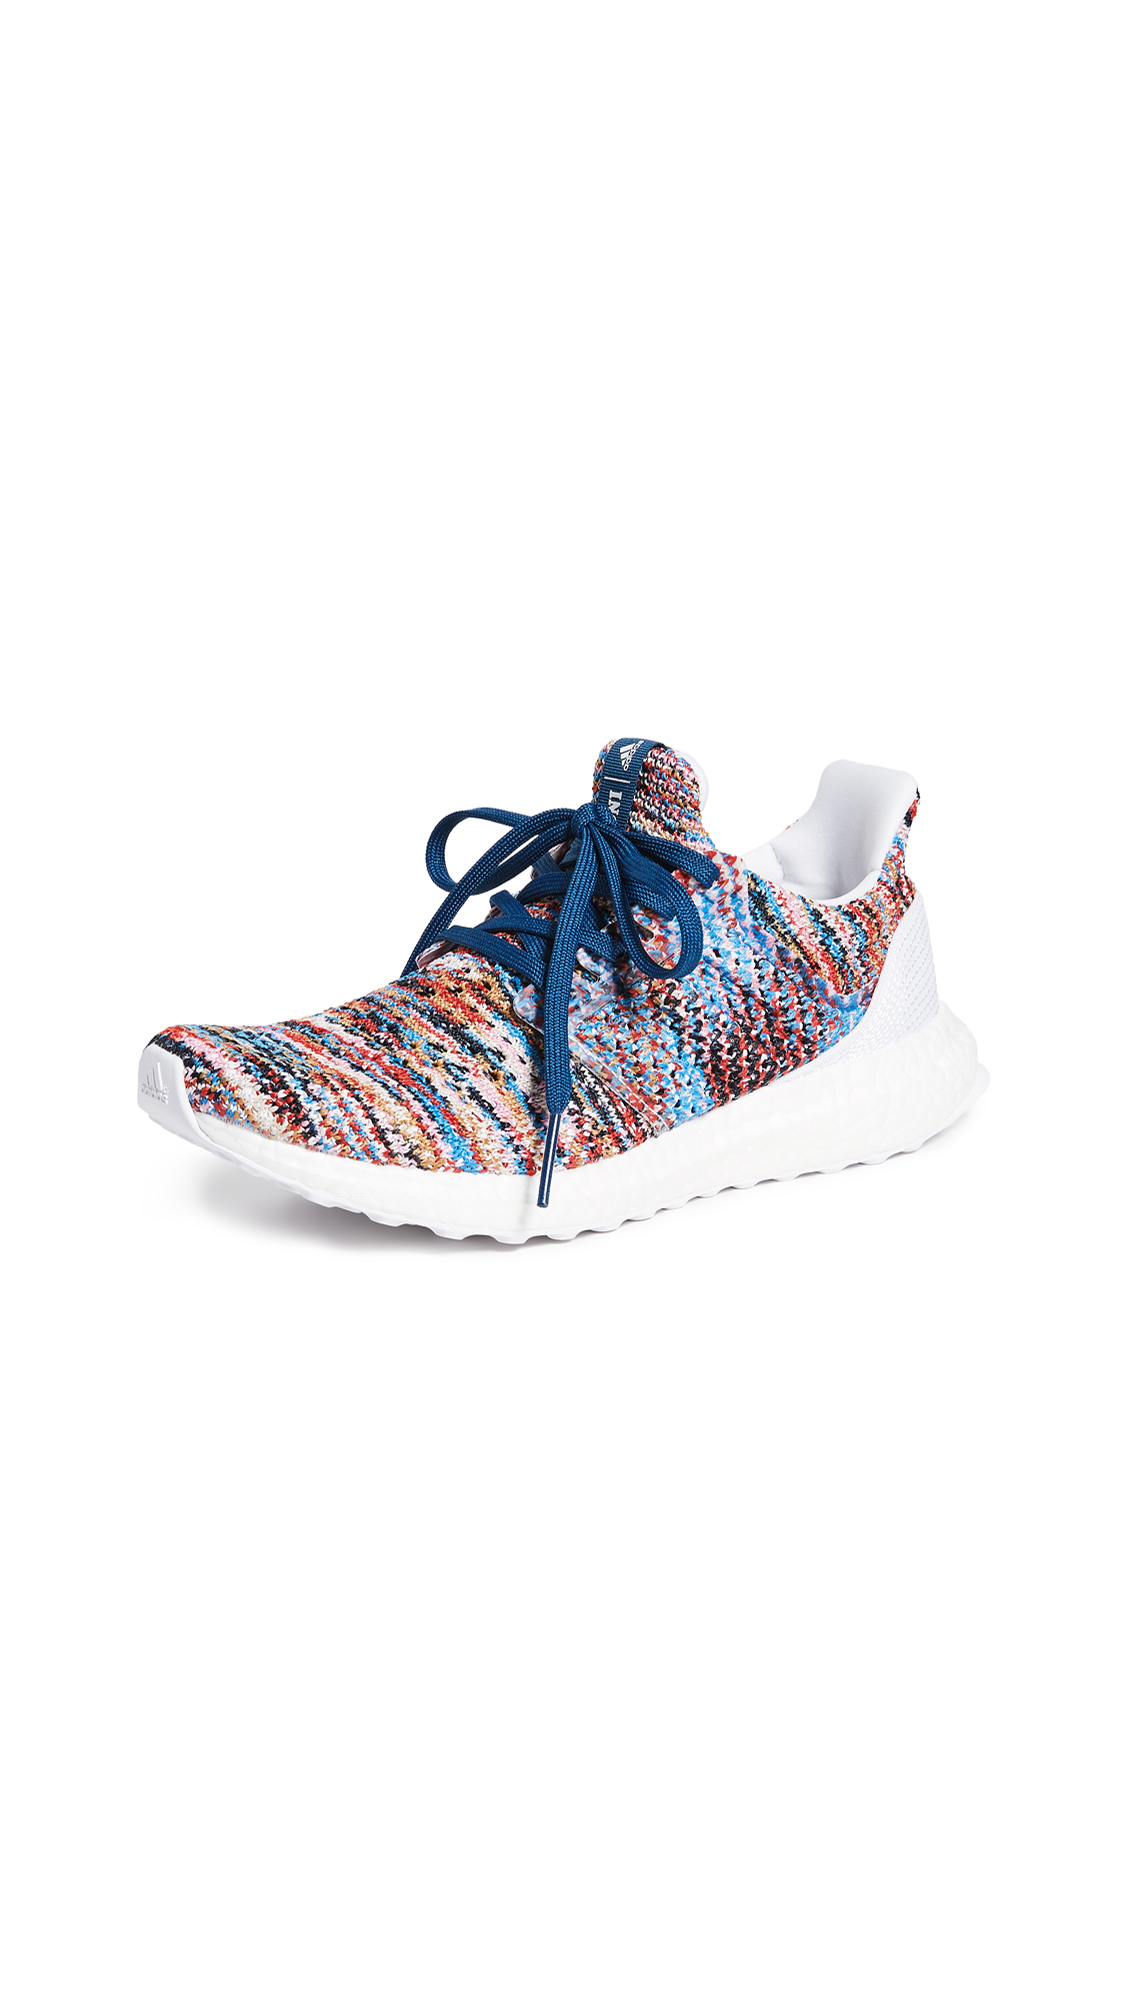 adidas Ultraboost CLIMA x MISSONI Sneakers - White/Shock Cyan/Active